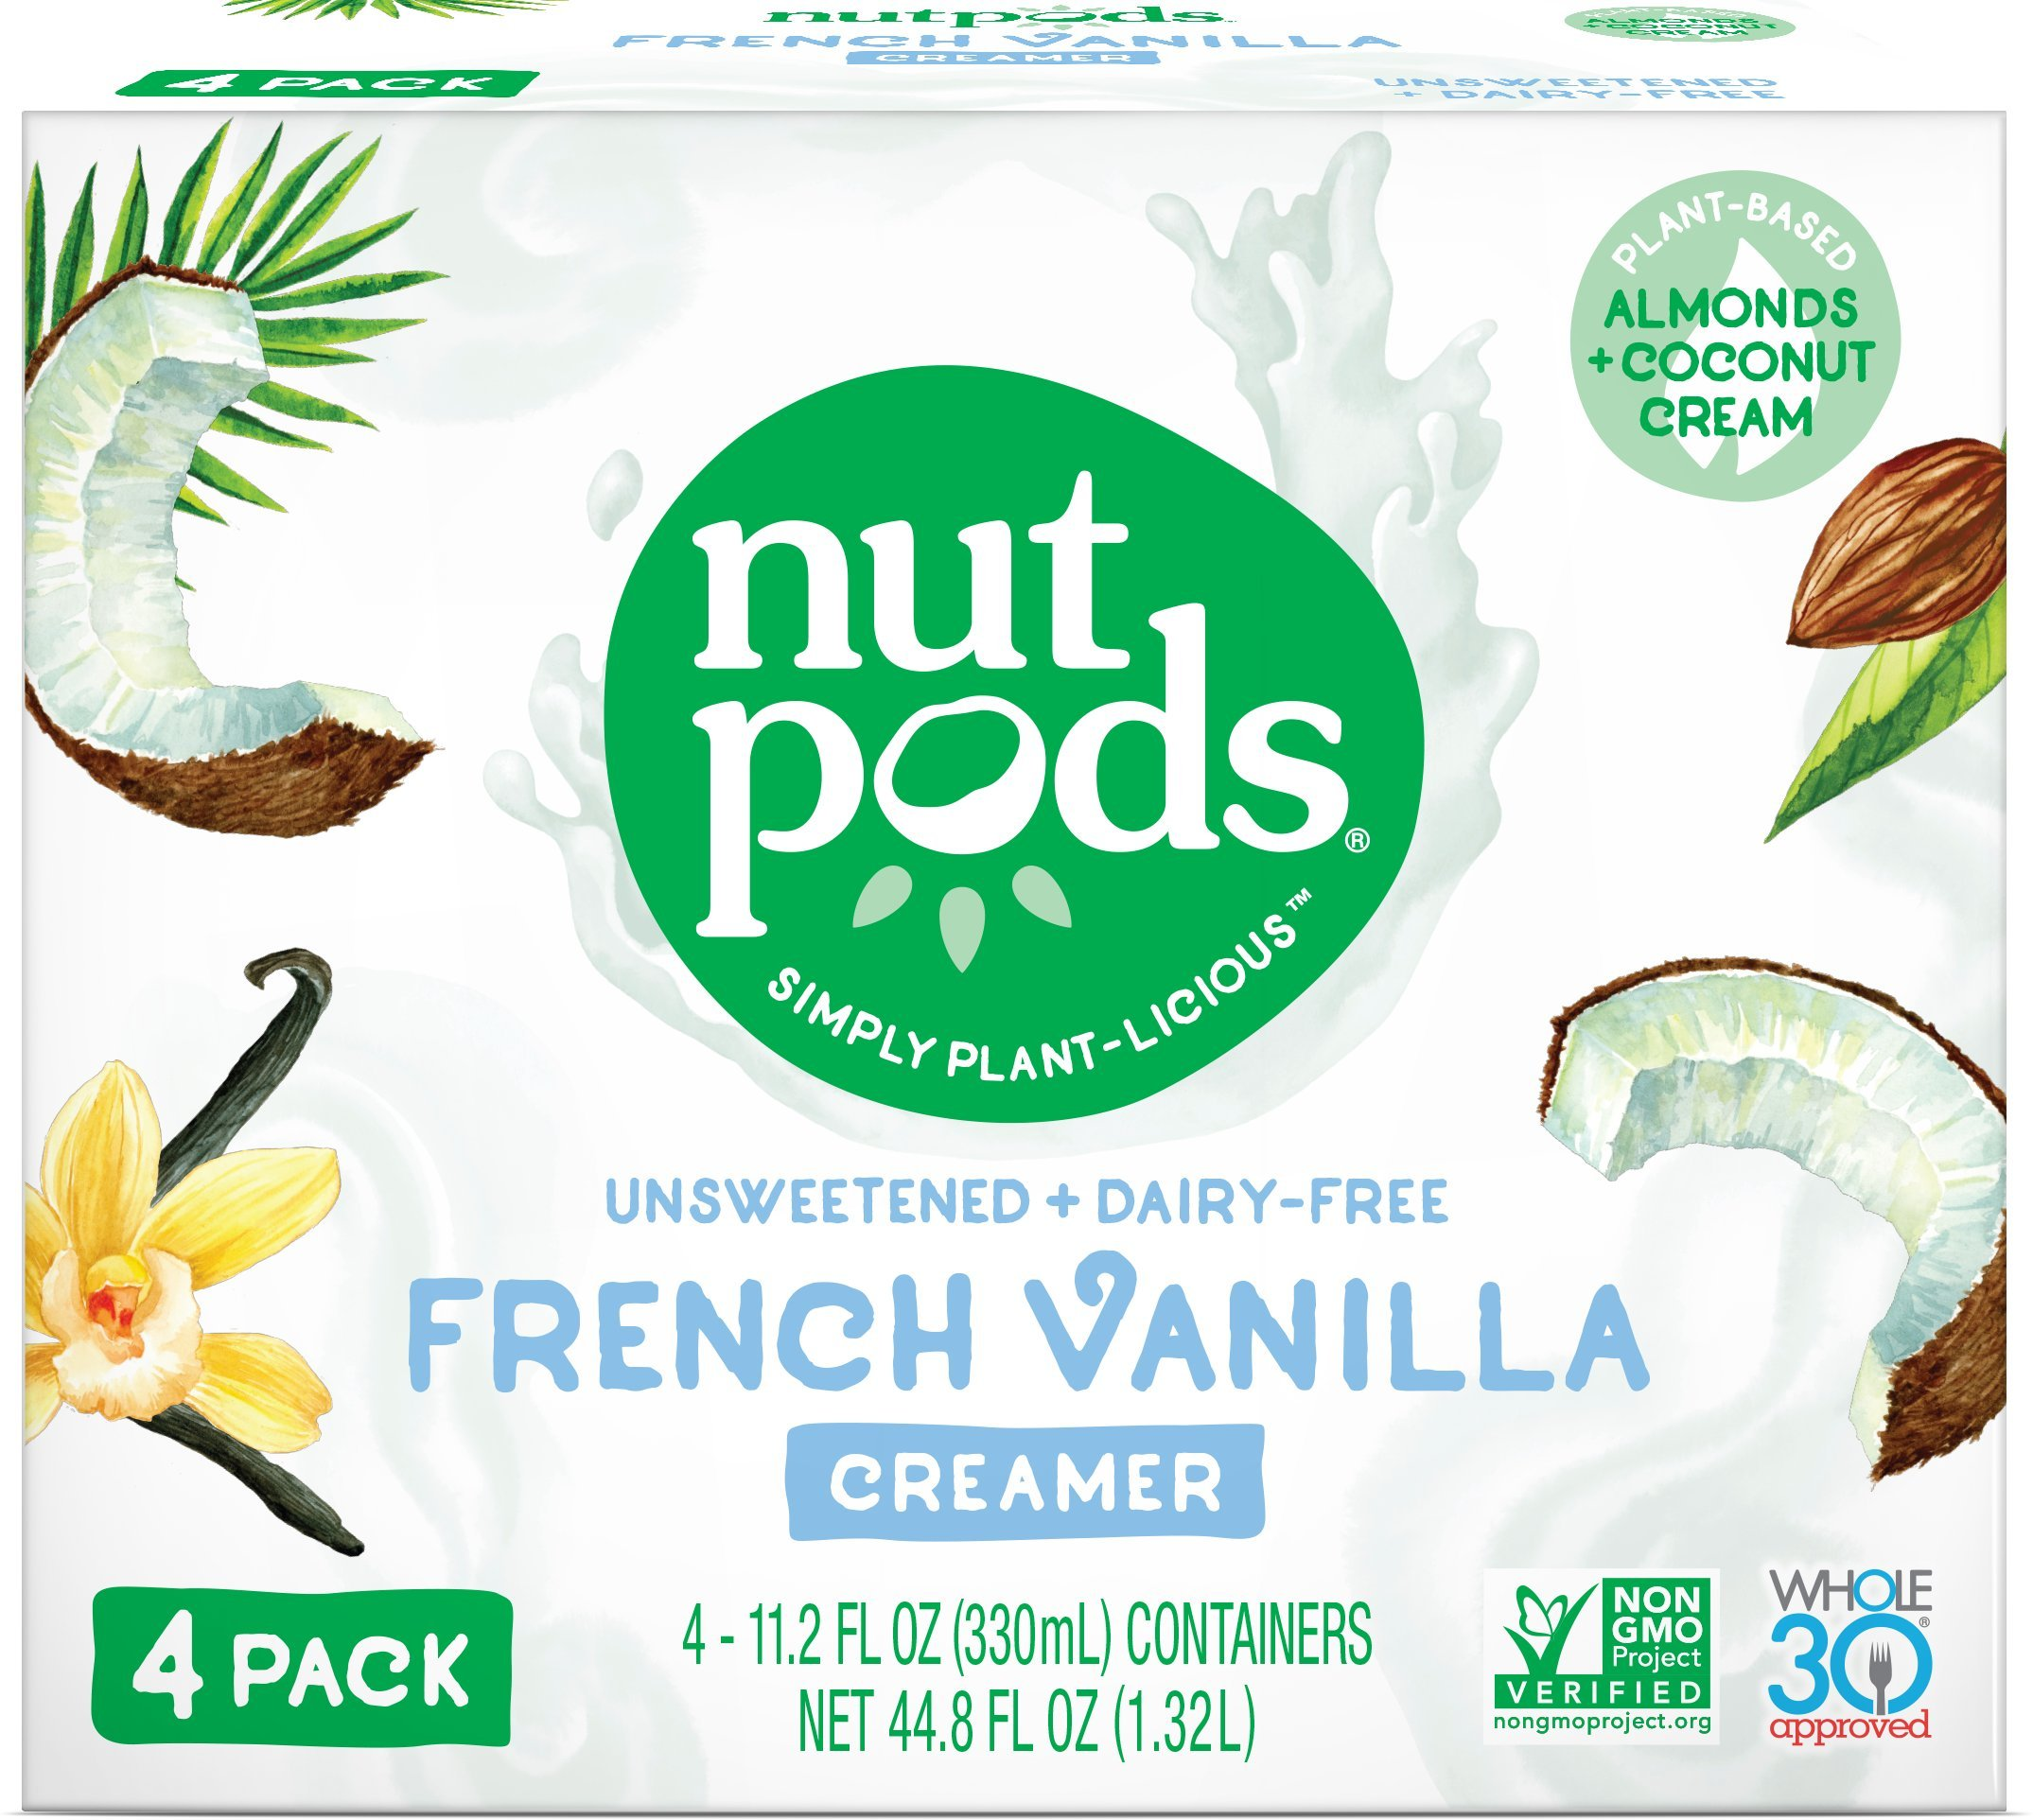 nutpods French Vanilla 4-pack, Unsweetened Dairy-Free Creamer, Whole30, Paleo, Keto, Non-GMO & Vegan, for Coffee, Tea & Cooking, made from almond and coconut